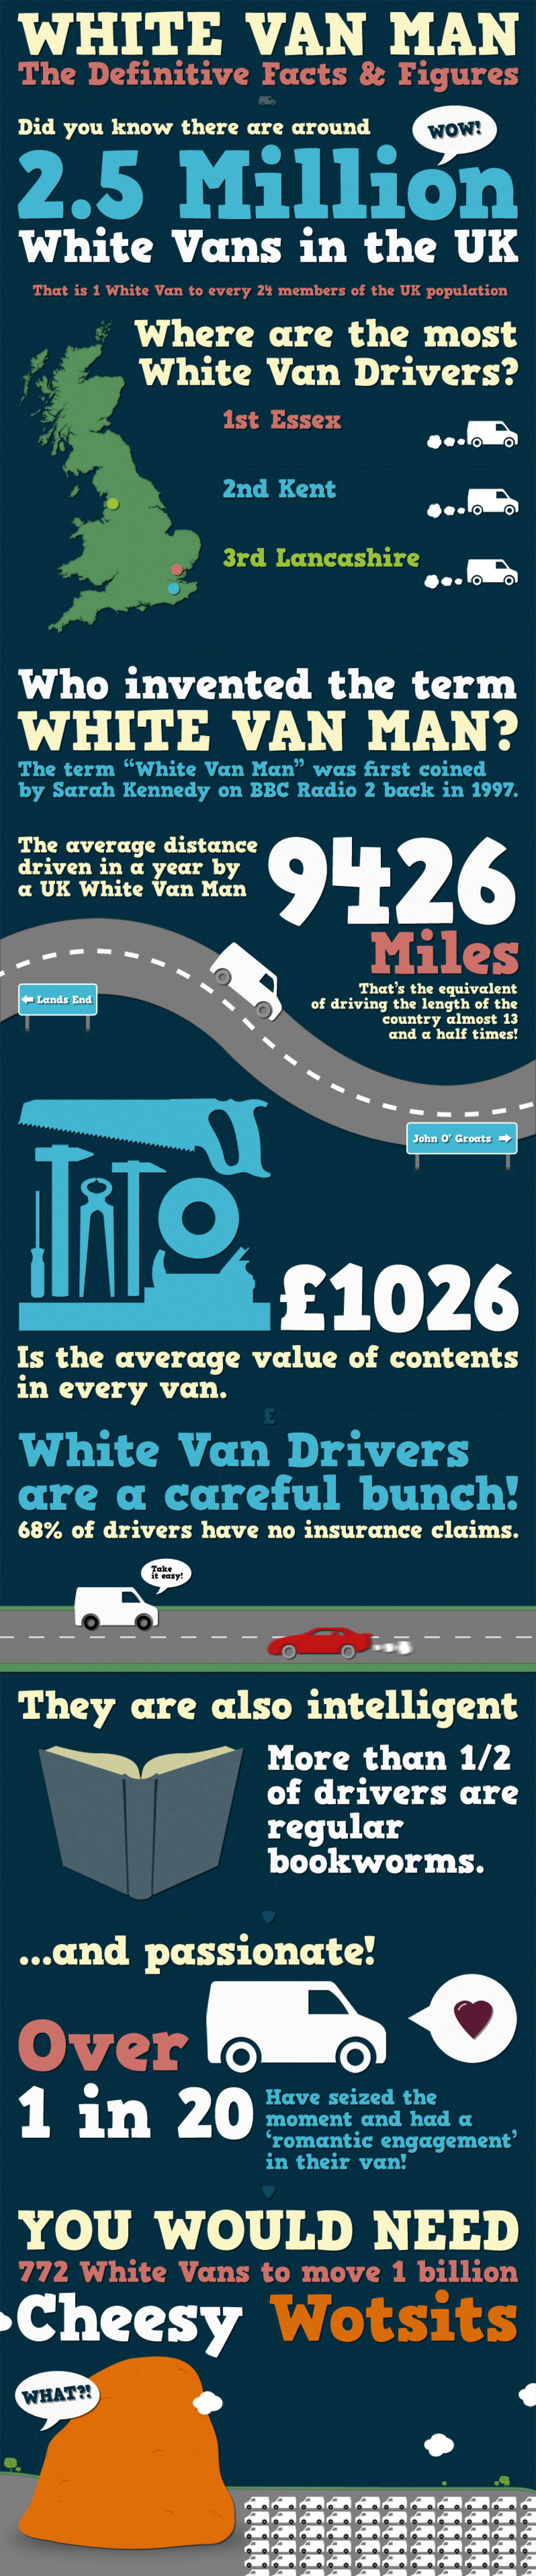 White Van Man - Facts, Stats  Infographic